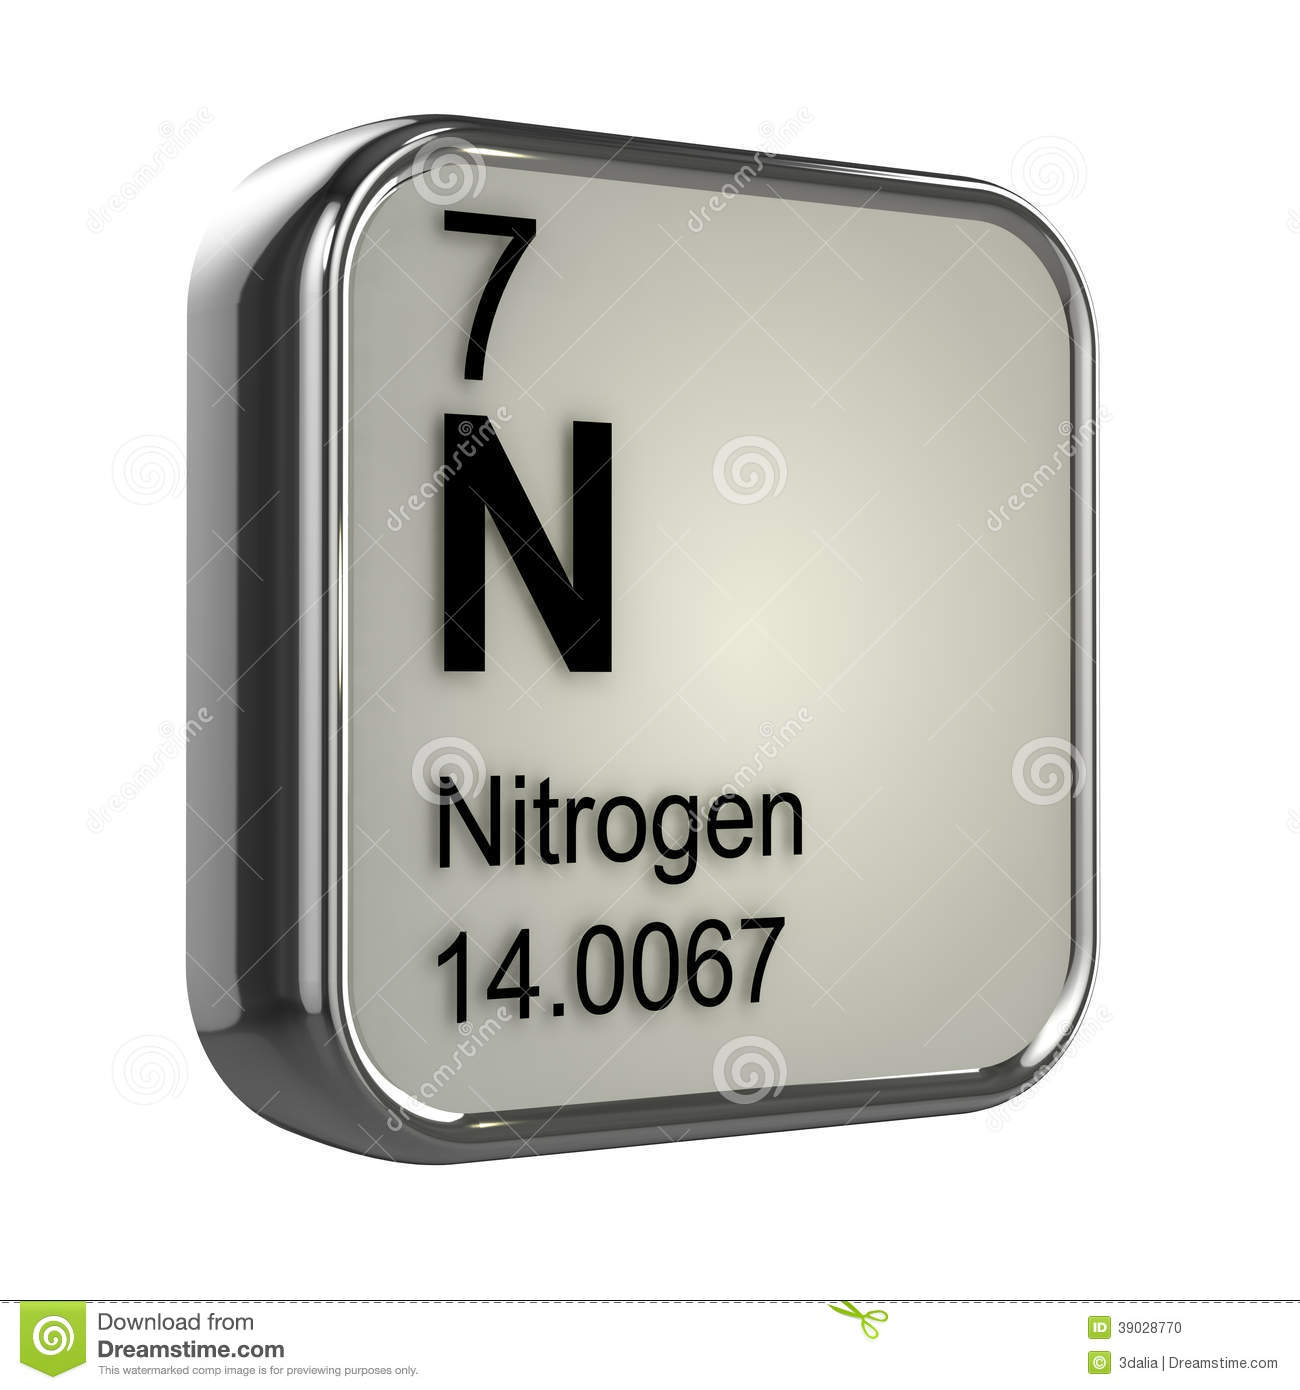 Se besides Noble Gases The Noble Gases Belong To Group Or A And Consist Of Helium C Neon C Argon C Krypton C Xenon C Radon C And Element Ununoctium further Metalloids Cont Characteristics Some Shiny Some Dull in addition Tin Form Periodic Table Elements together with Atm. on nitrogen periodic table